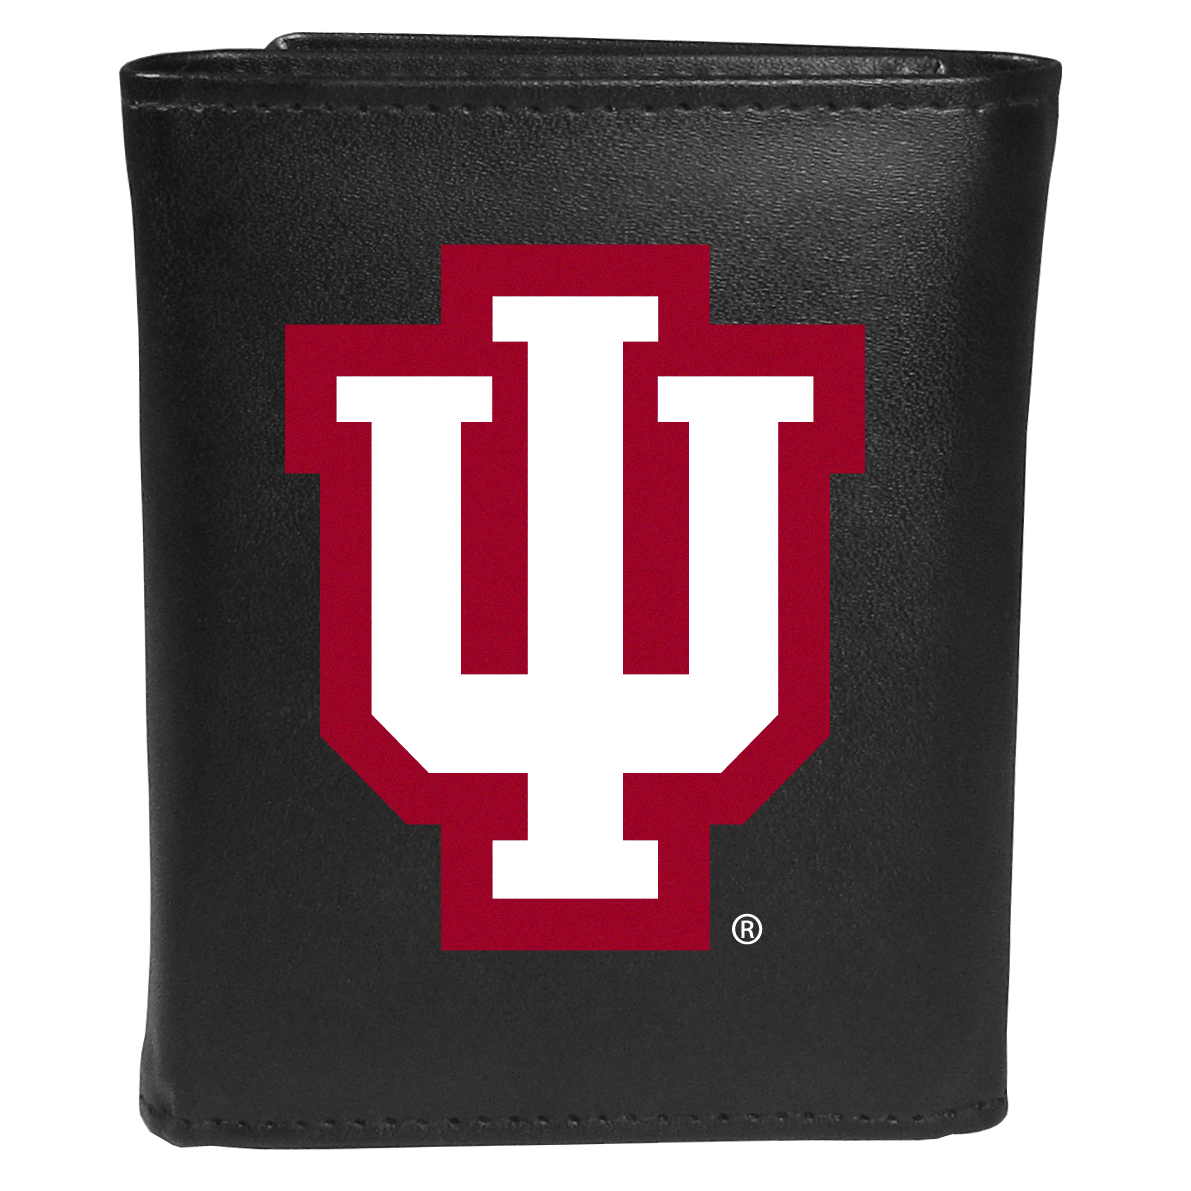 Indiana Hoosiers Tri-fold Wallet Large Logo - Sports fans do not have to sacrifice style with this classic tri-fold wallet that sports theIndiana Hoosiers?extra large logo. This men's fashion accessory has a leather grain look and expert craftmanship for a quality wallet at a great price. The wallet features inner credit card slots, windowed ID slot and a large billfold pocket. The front of the wallet features an extra large printed team logo.